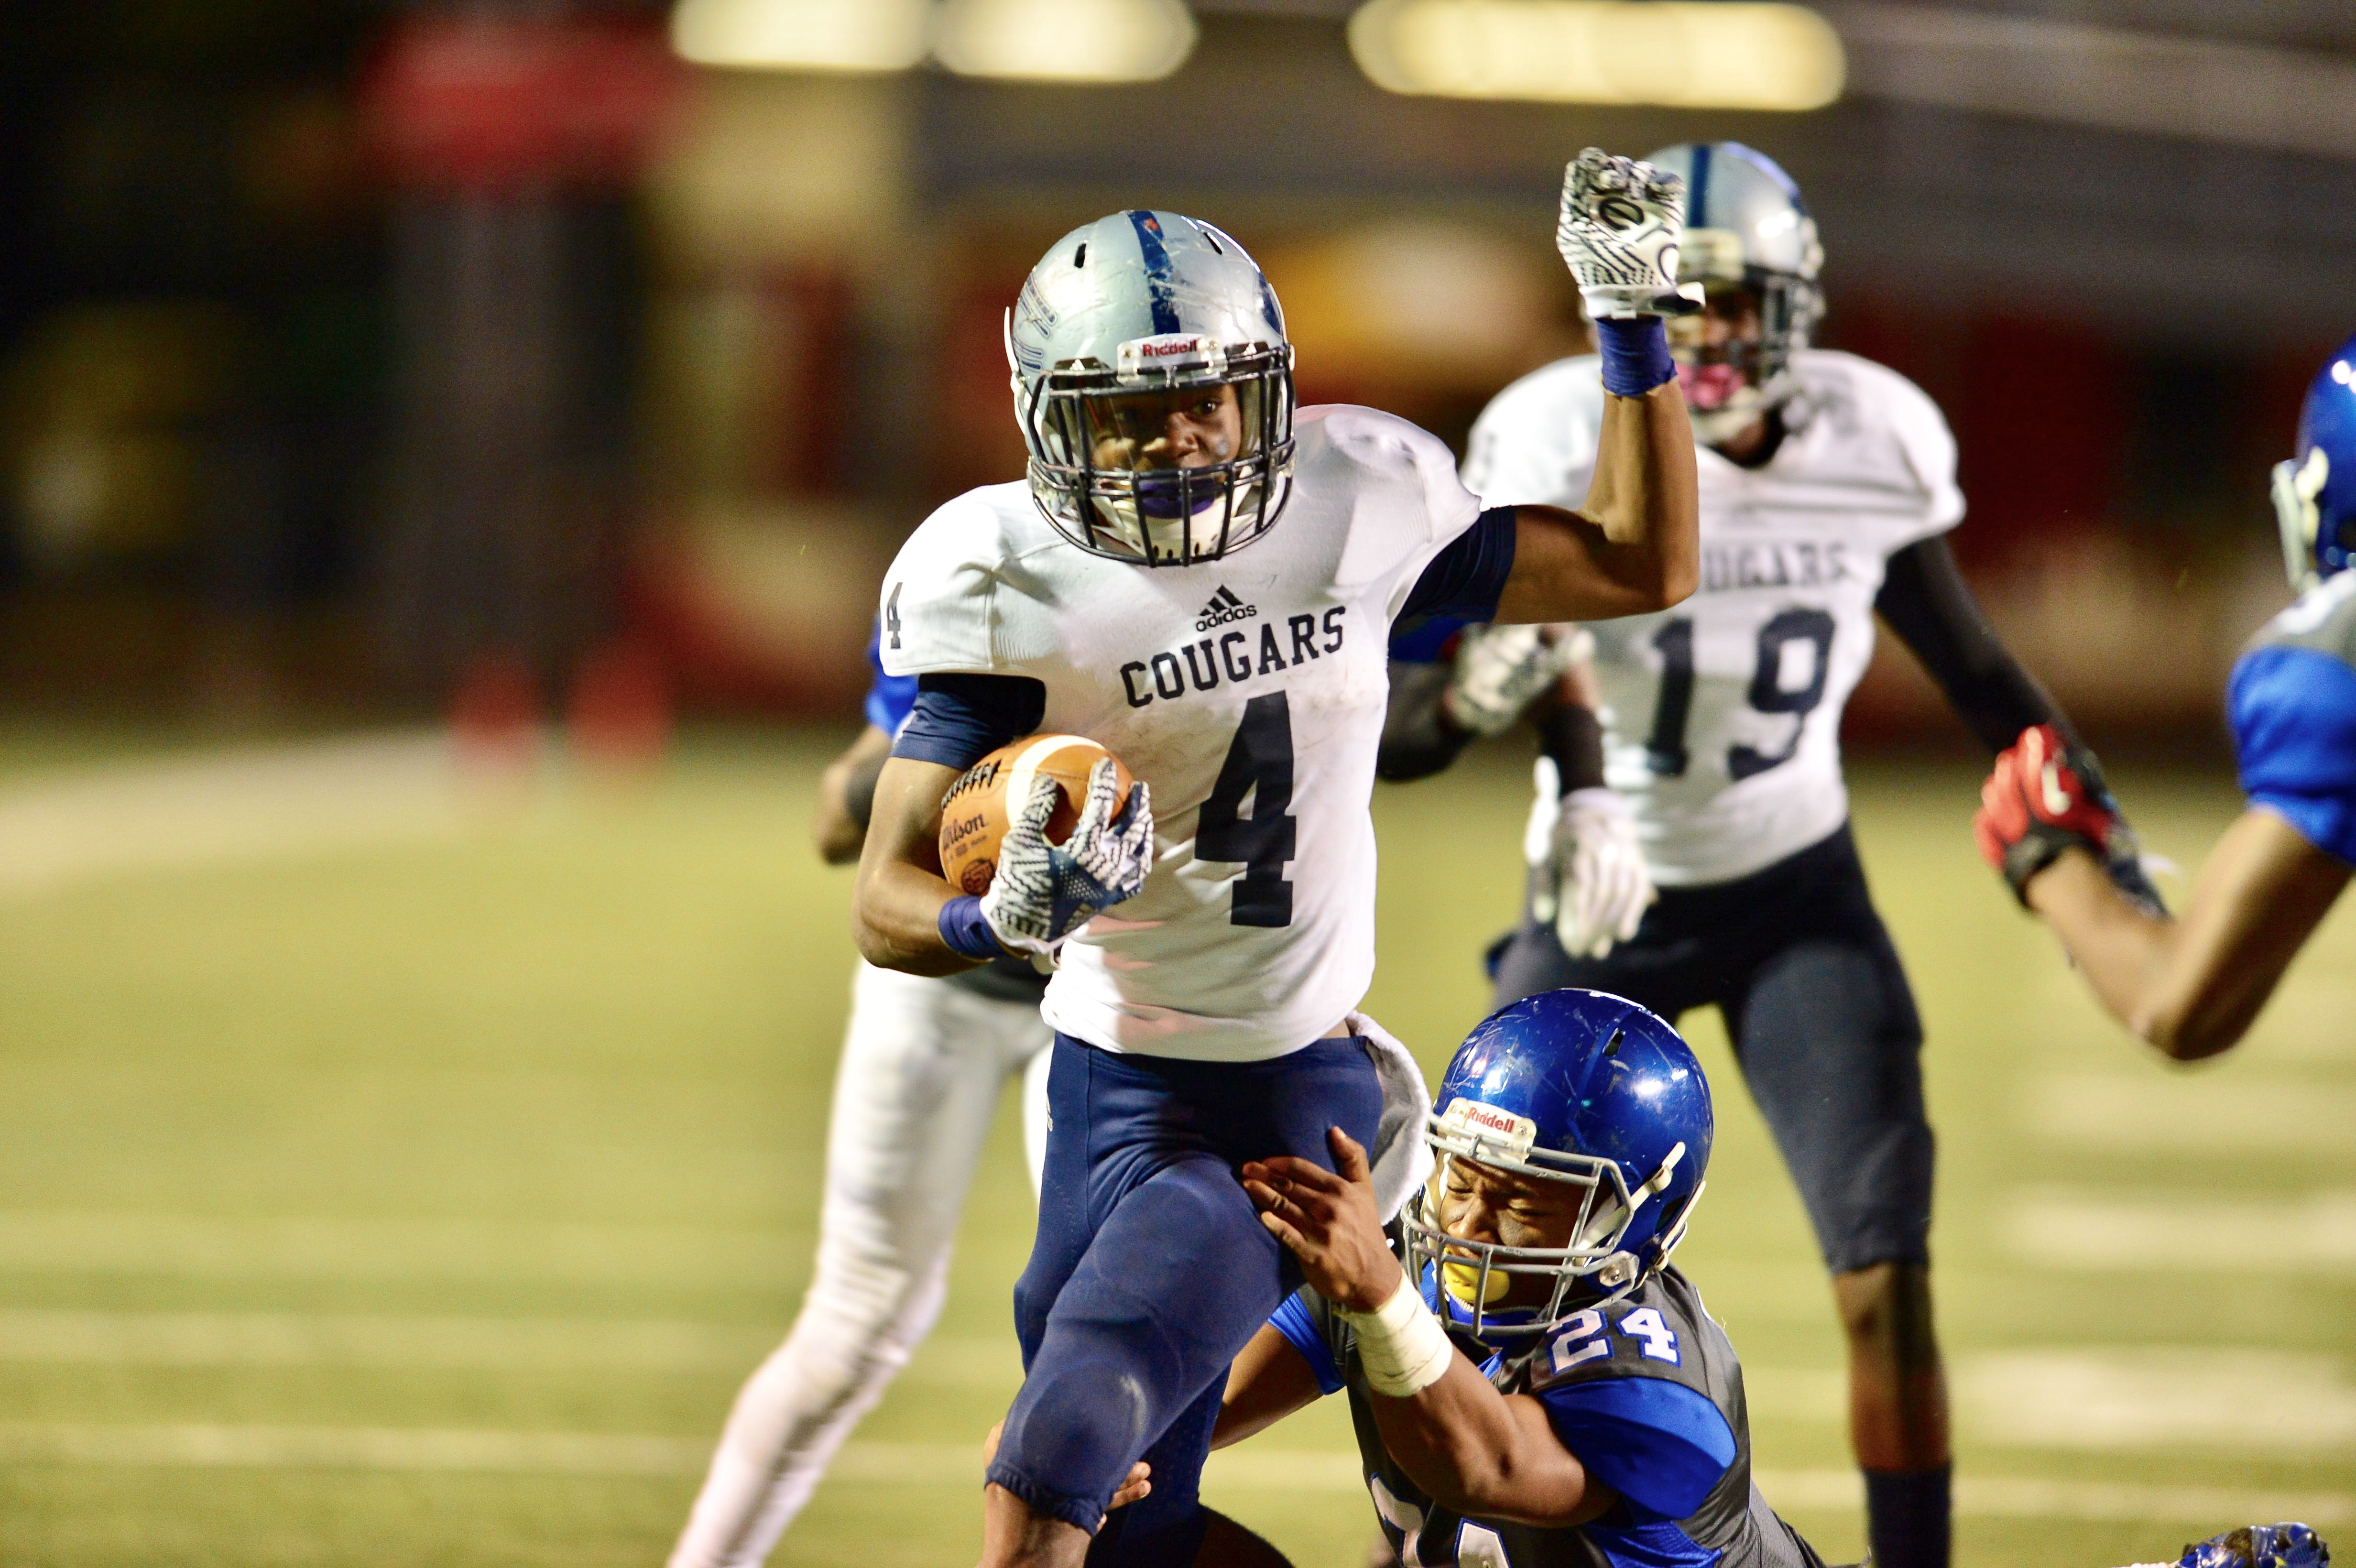 Defense shines in Indians' playoff win